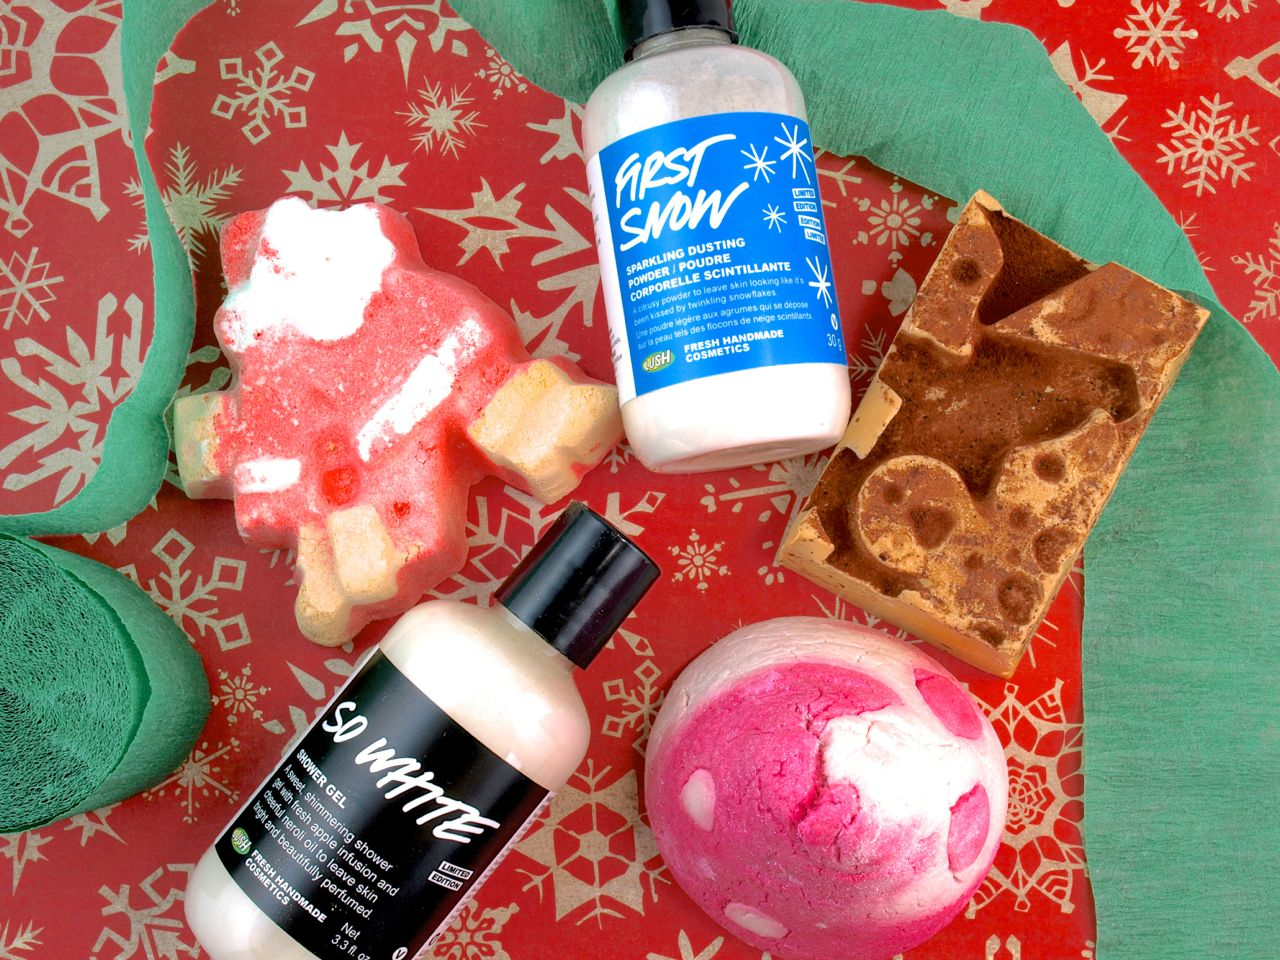 Lush Christmas 2014 Collection: Reviews